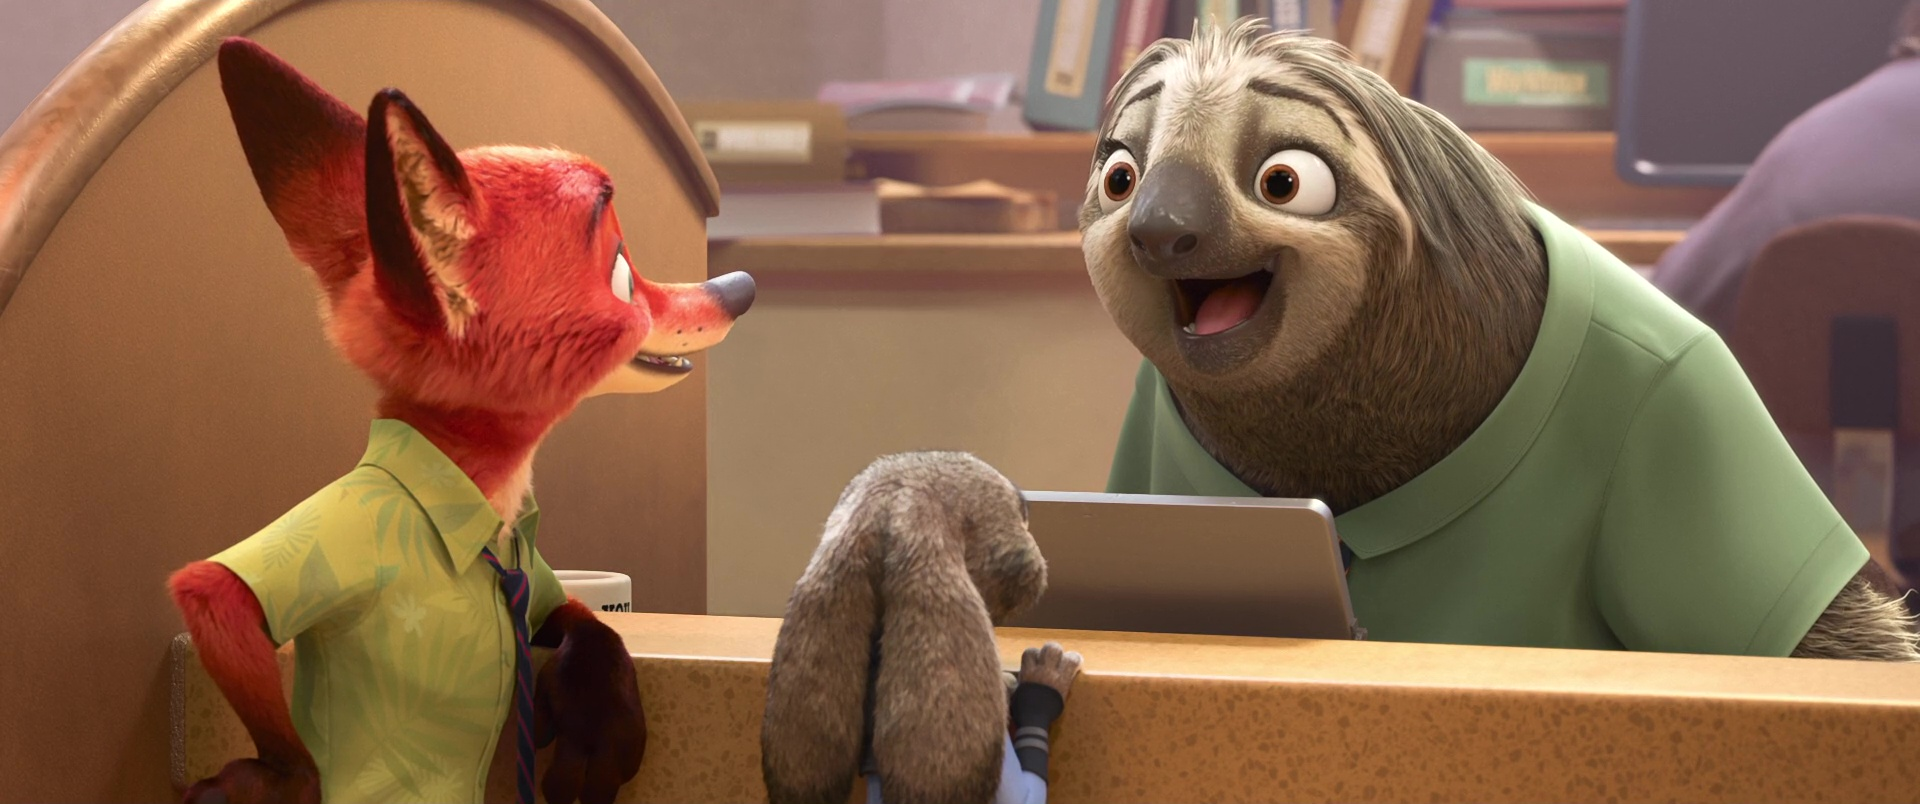 flash disney personnage character zootopie zootopia